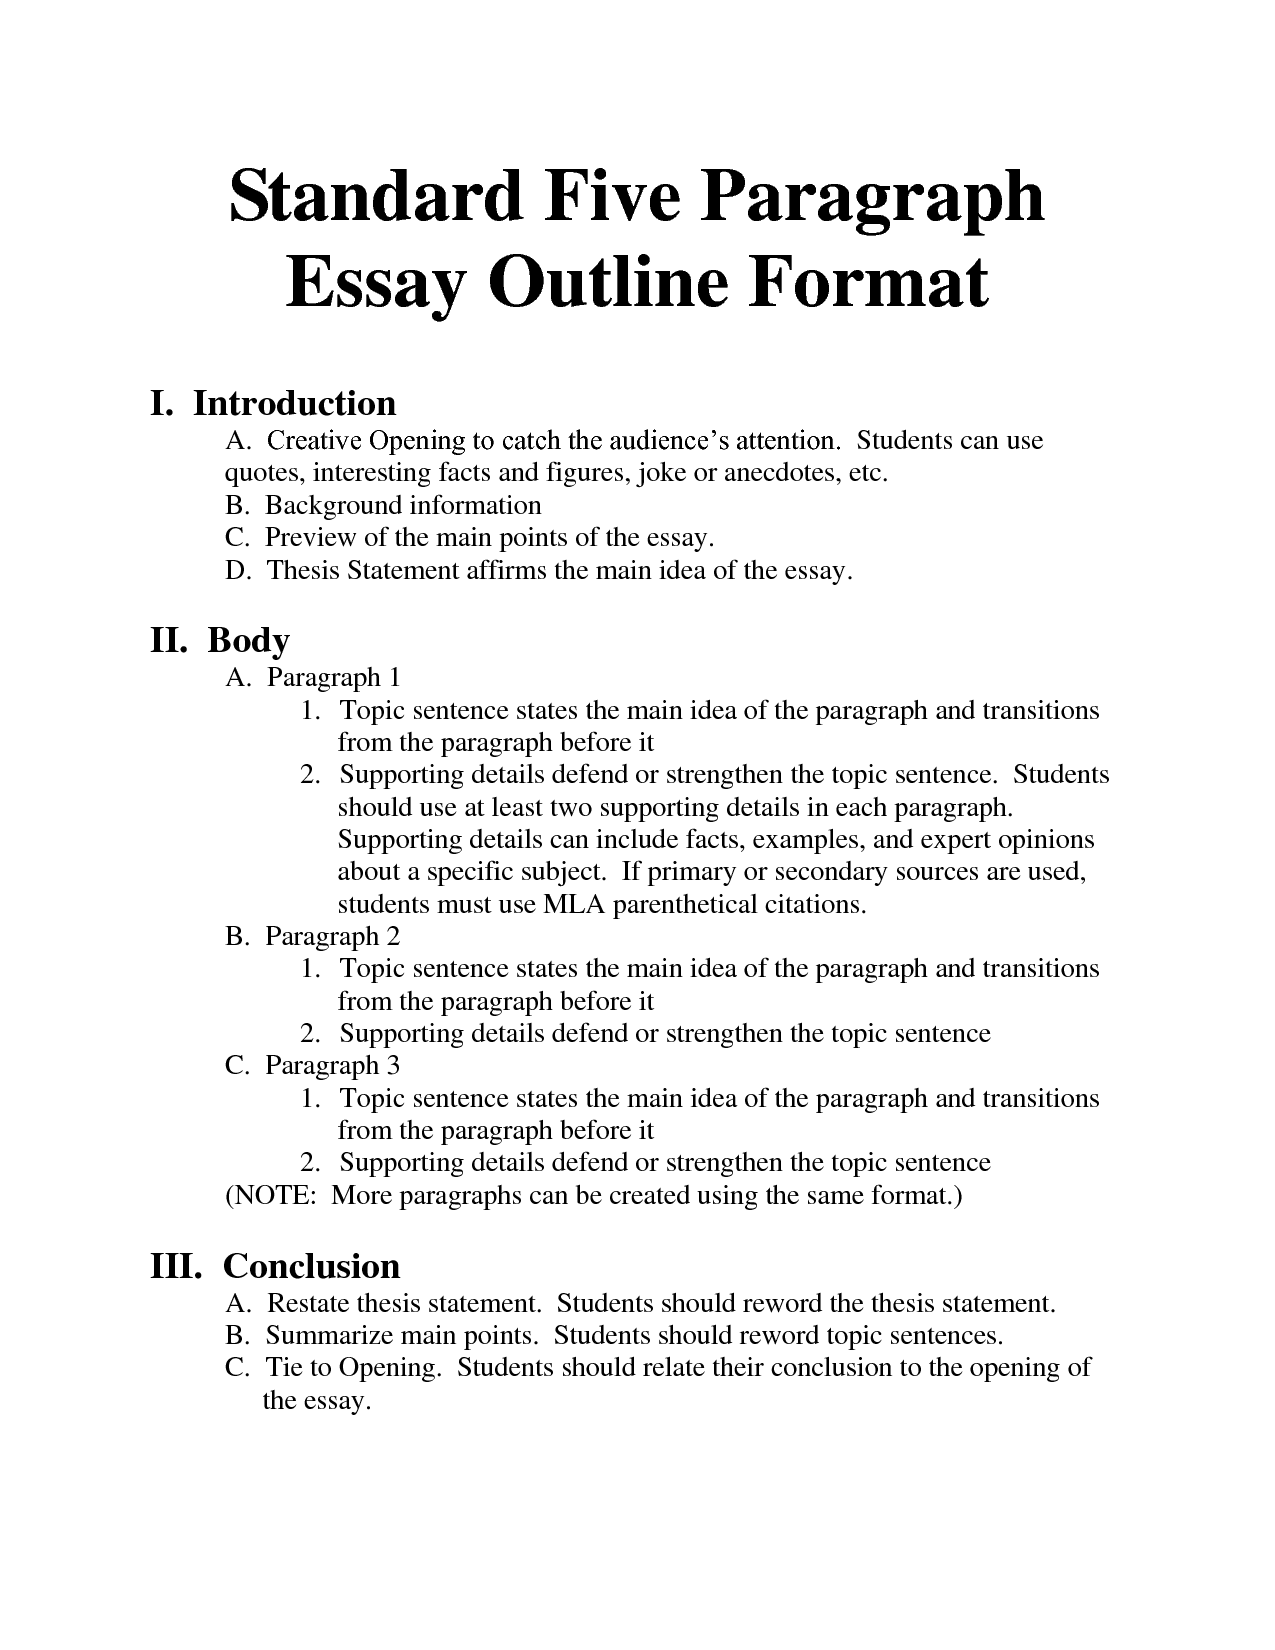 How to do an outline for an essay ukran agdiffusion com